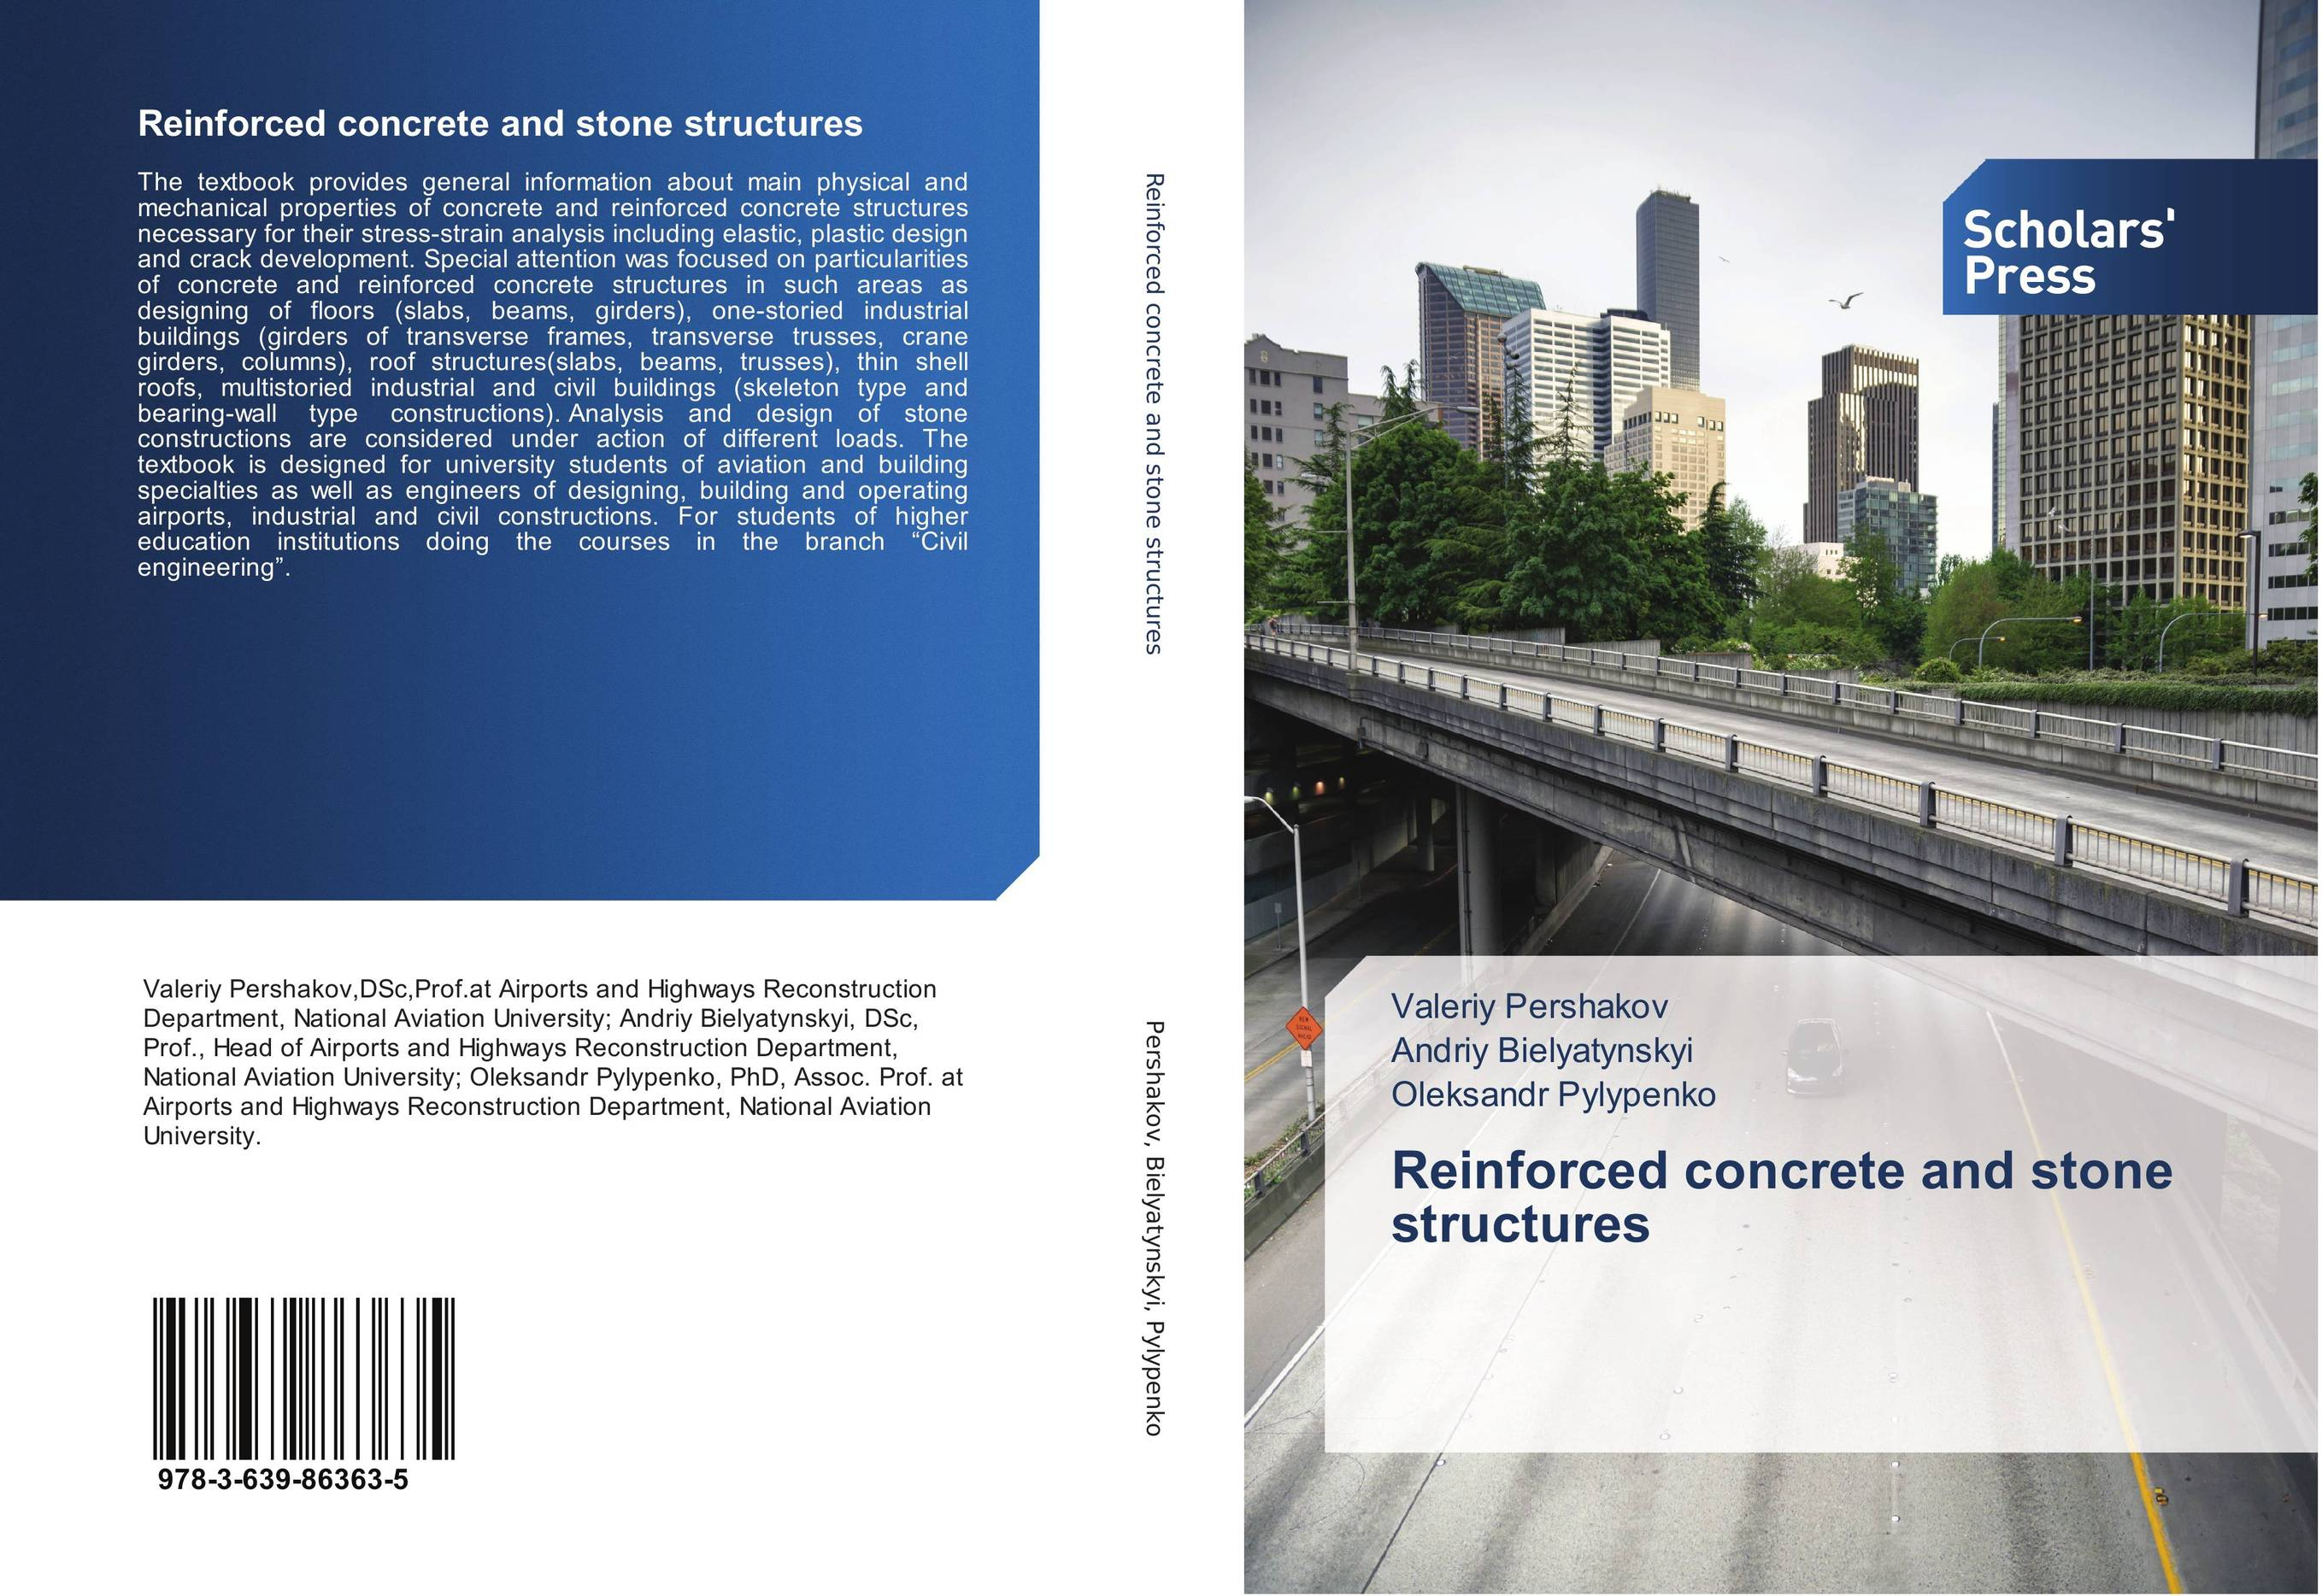 Reinforced concrete and stone structures industrial design education